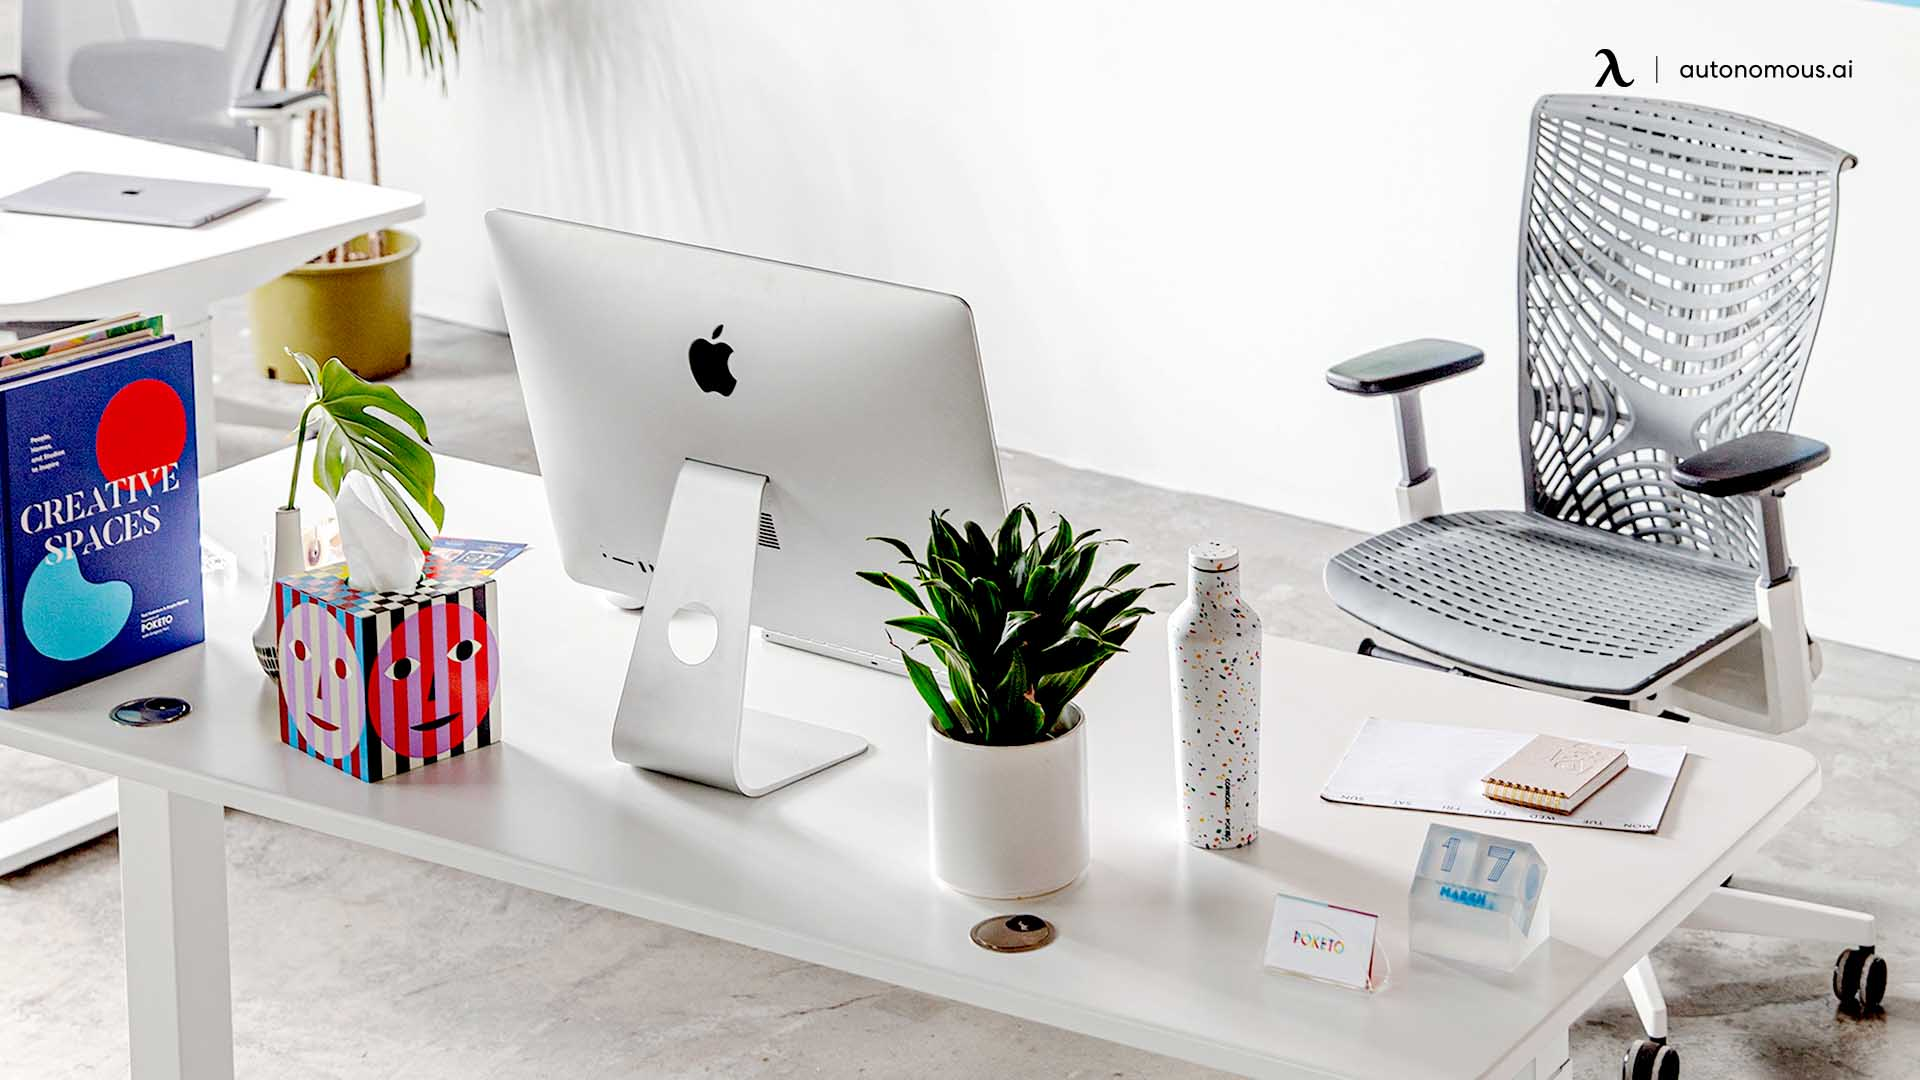 How to Get an Ultimate Desk Setup